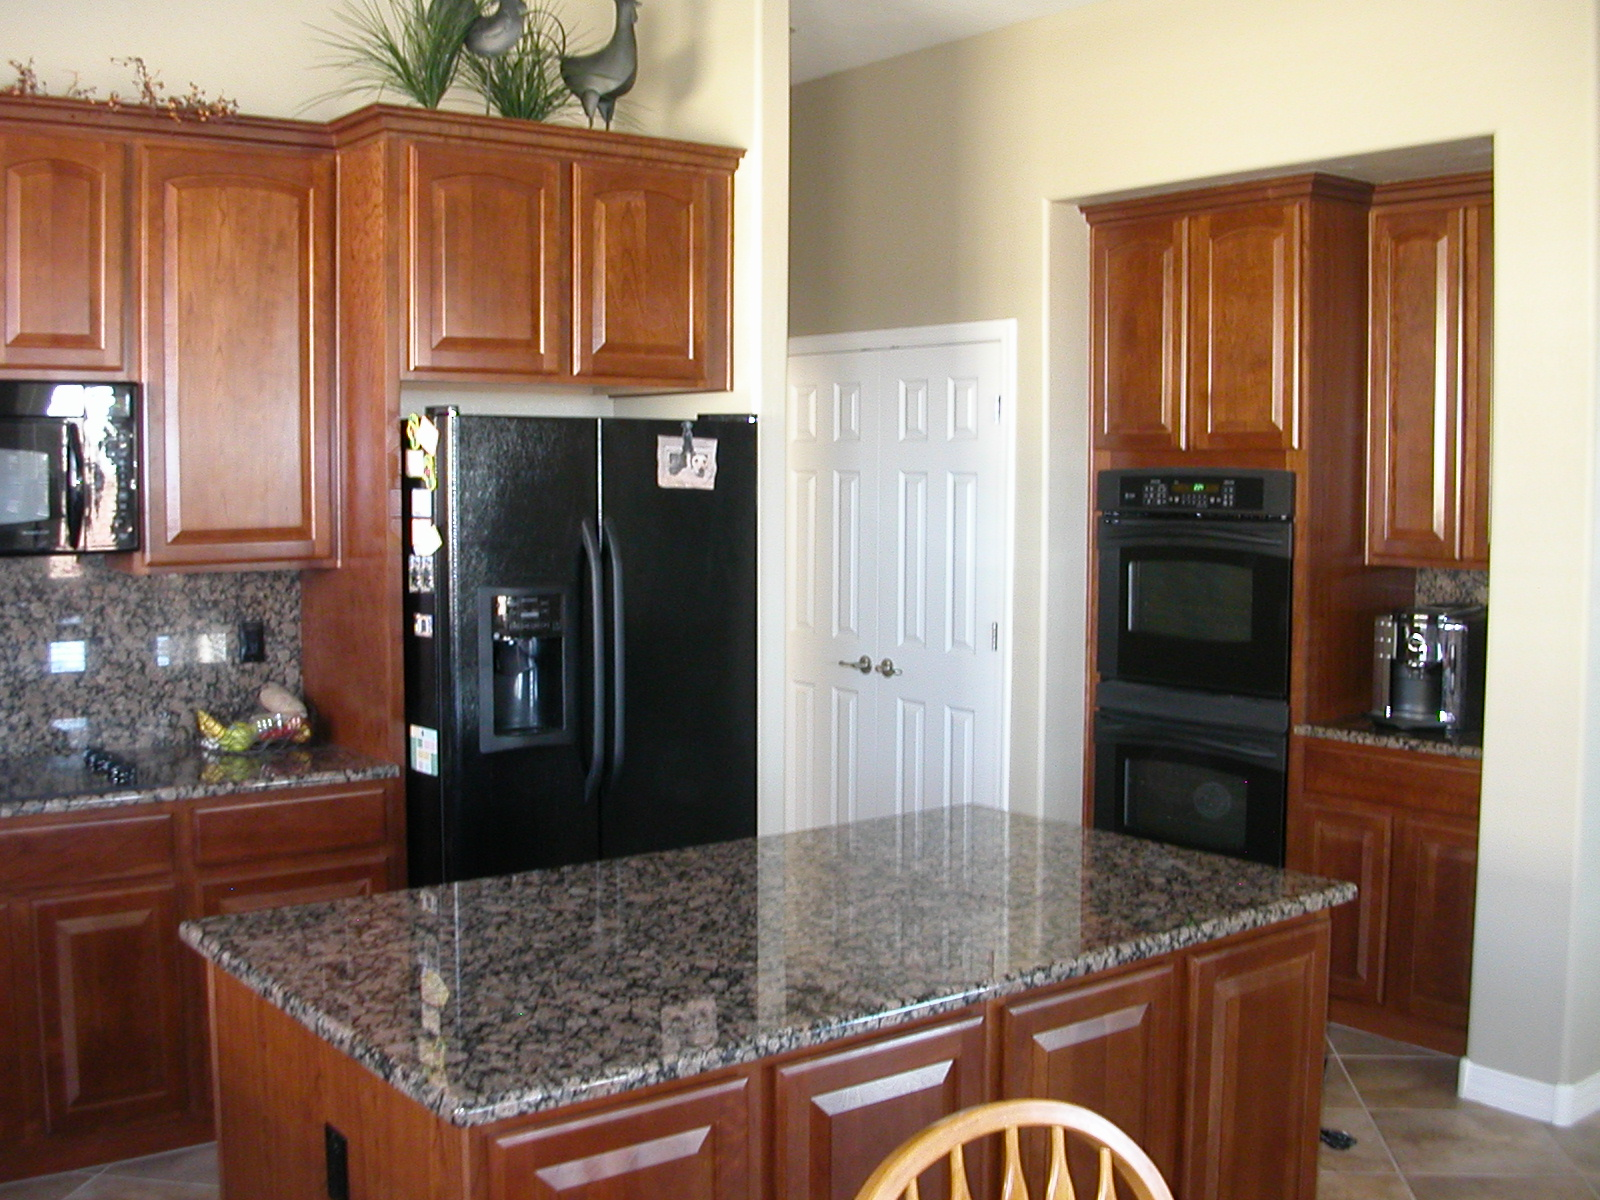 black and stainless kitchen black vs stainless steel appliances jpg